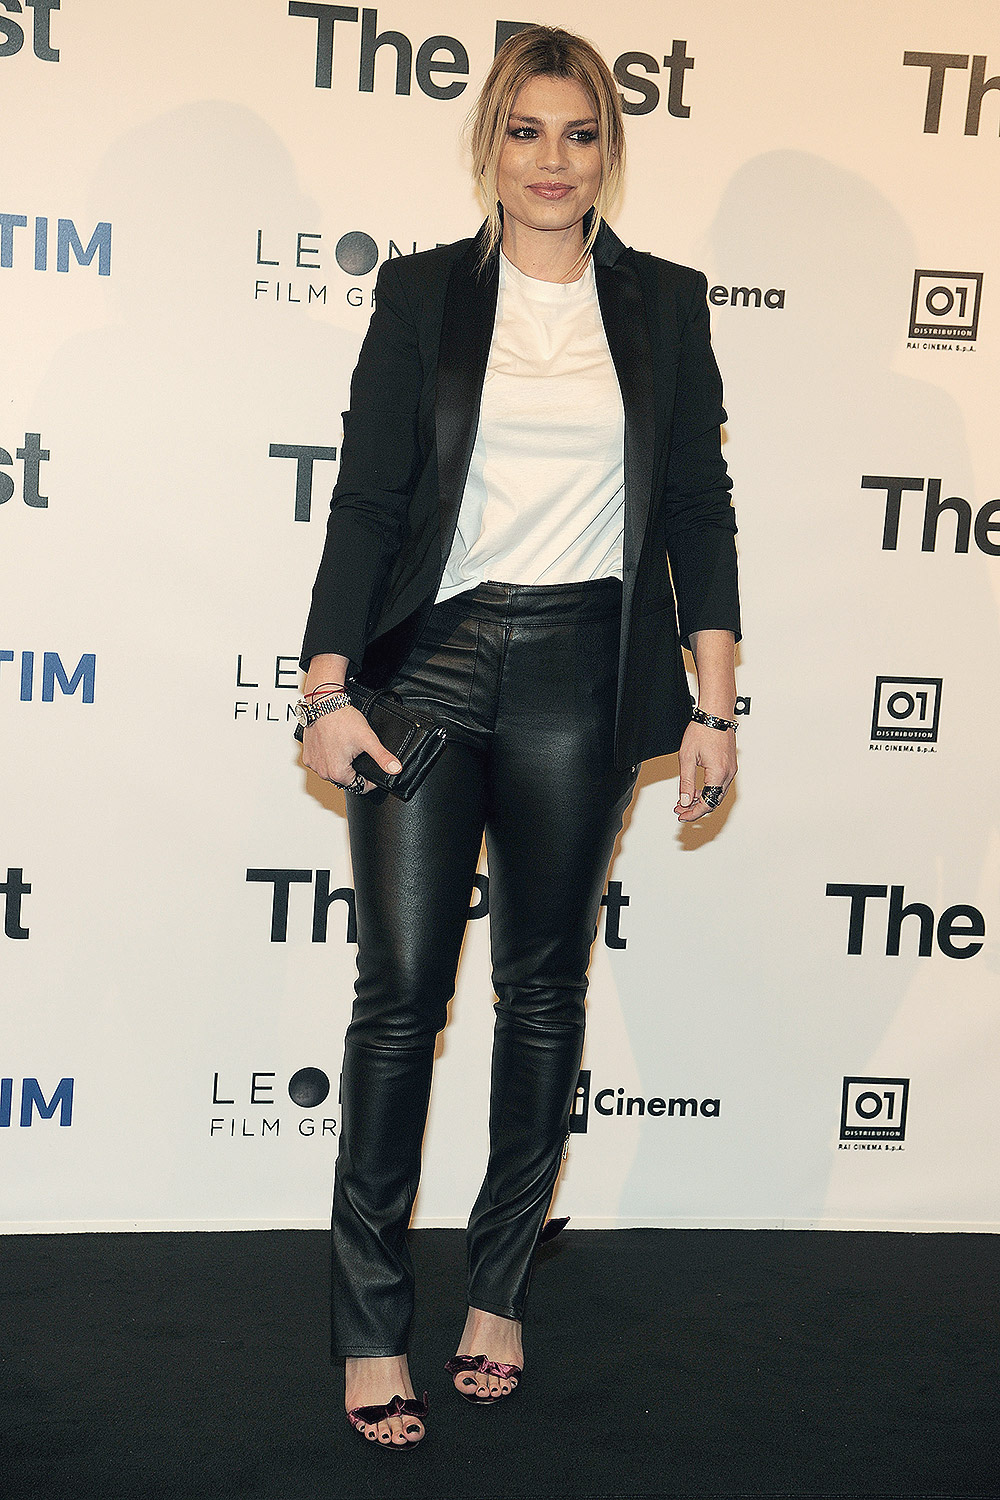 Emma Marrone attends The Post Red Carpet